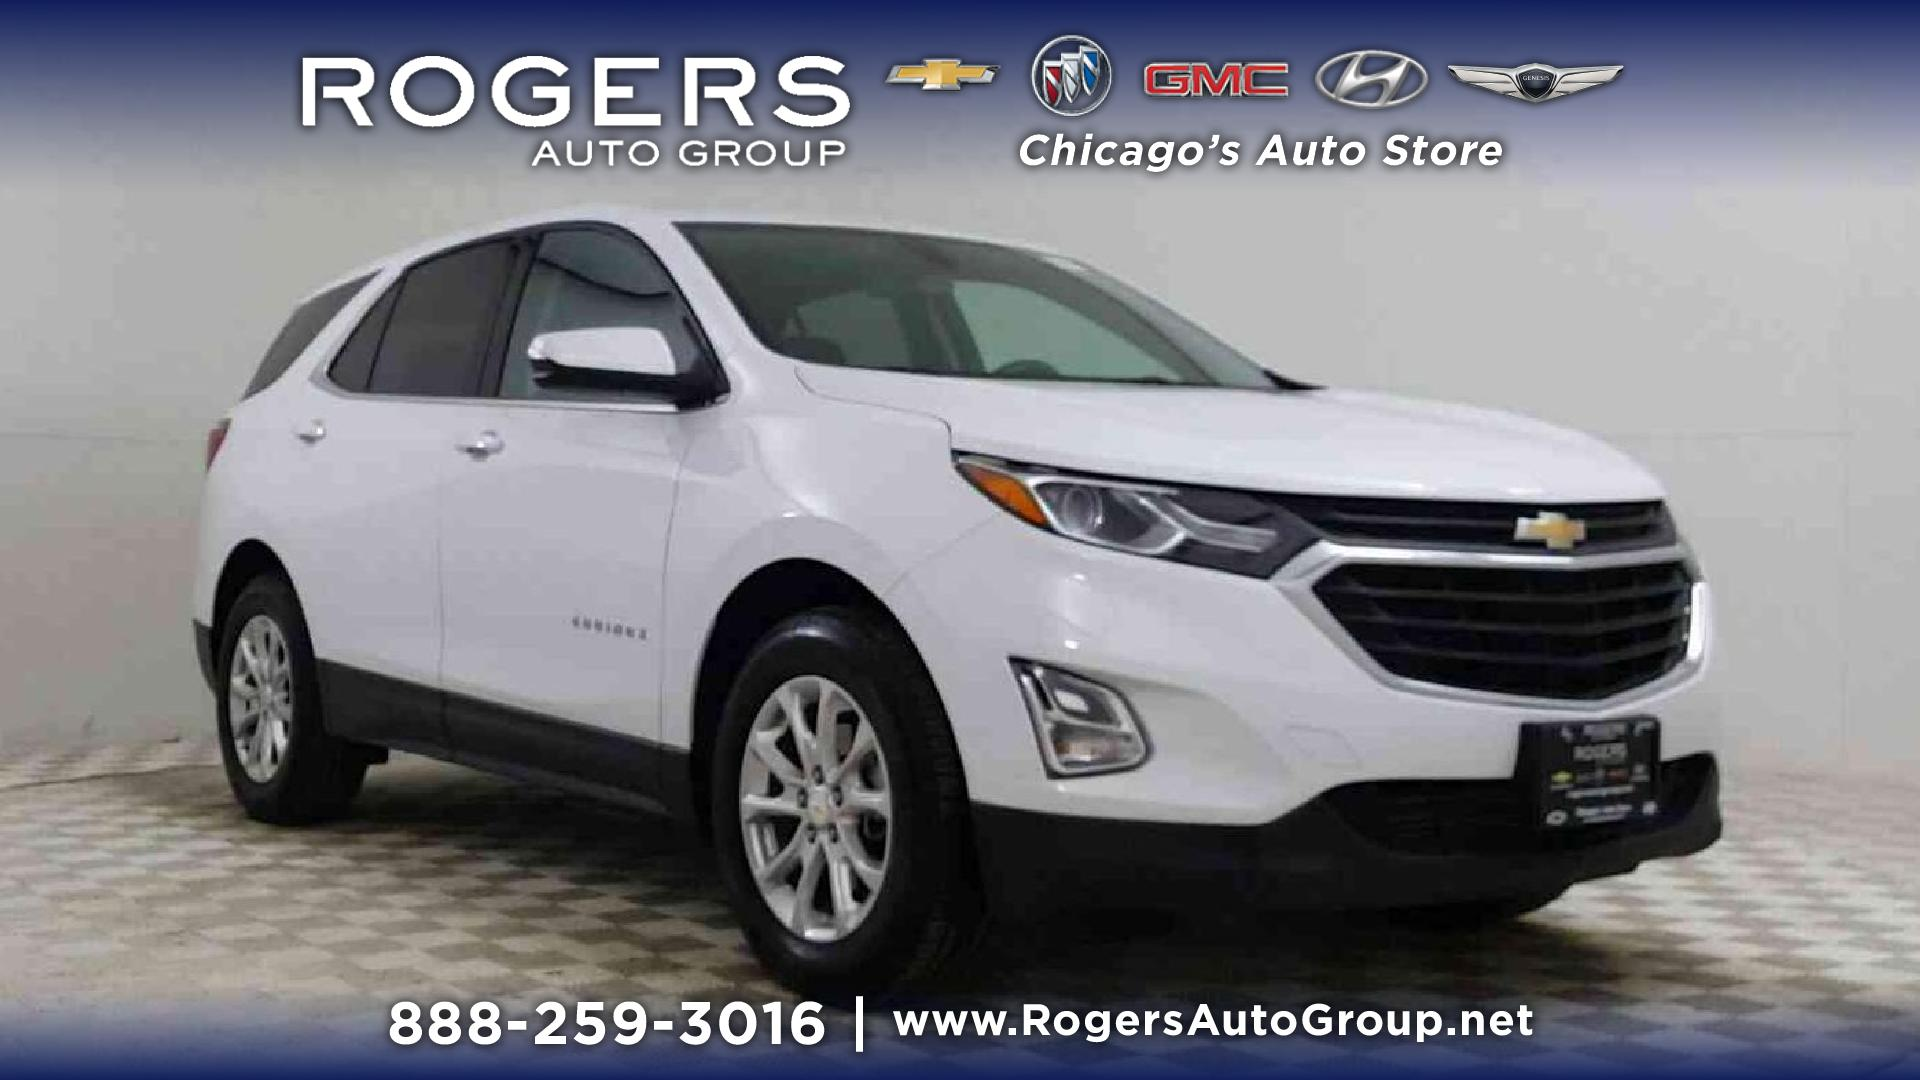 Welcome to Our Chicago Chevrolet Dealership - Rogers Chevrolet